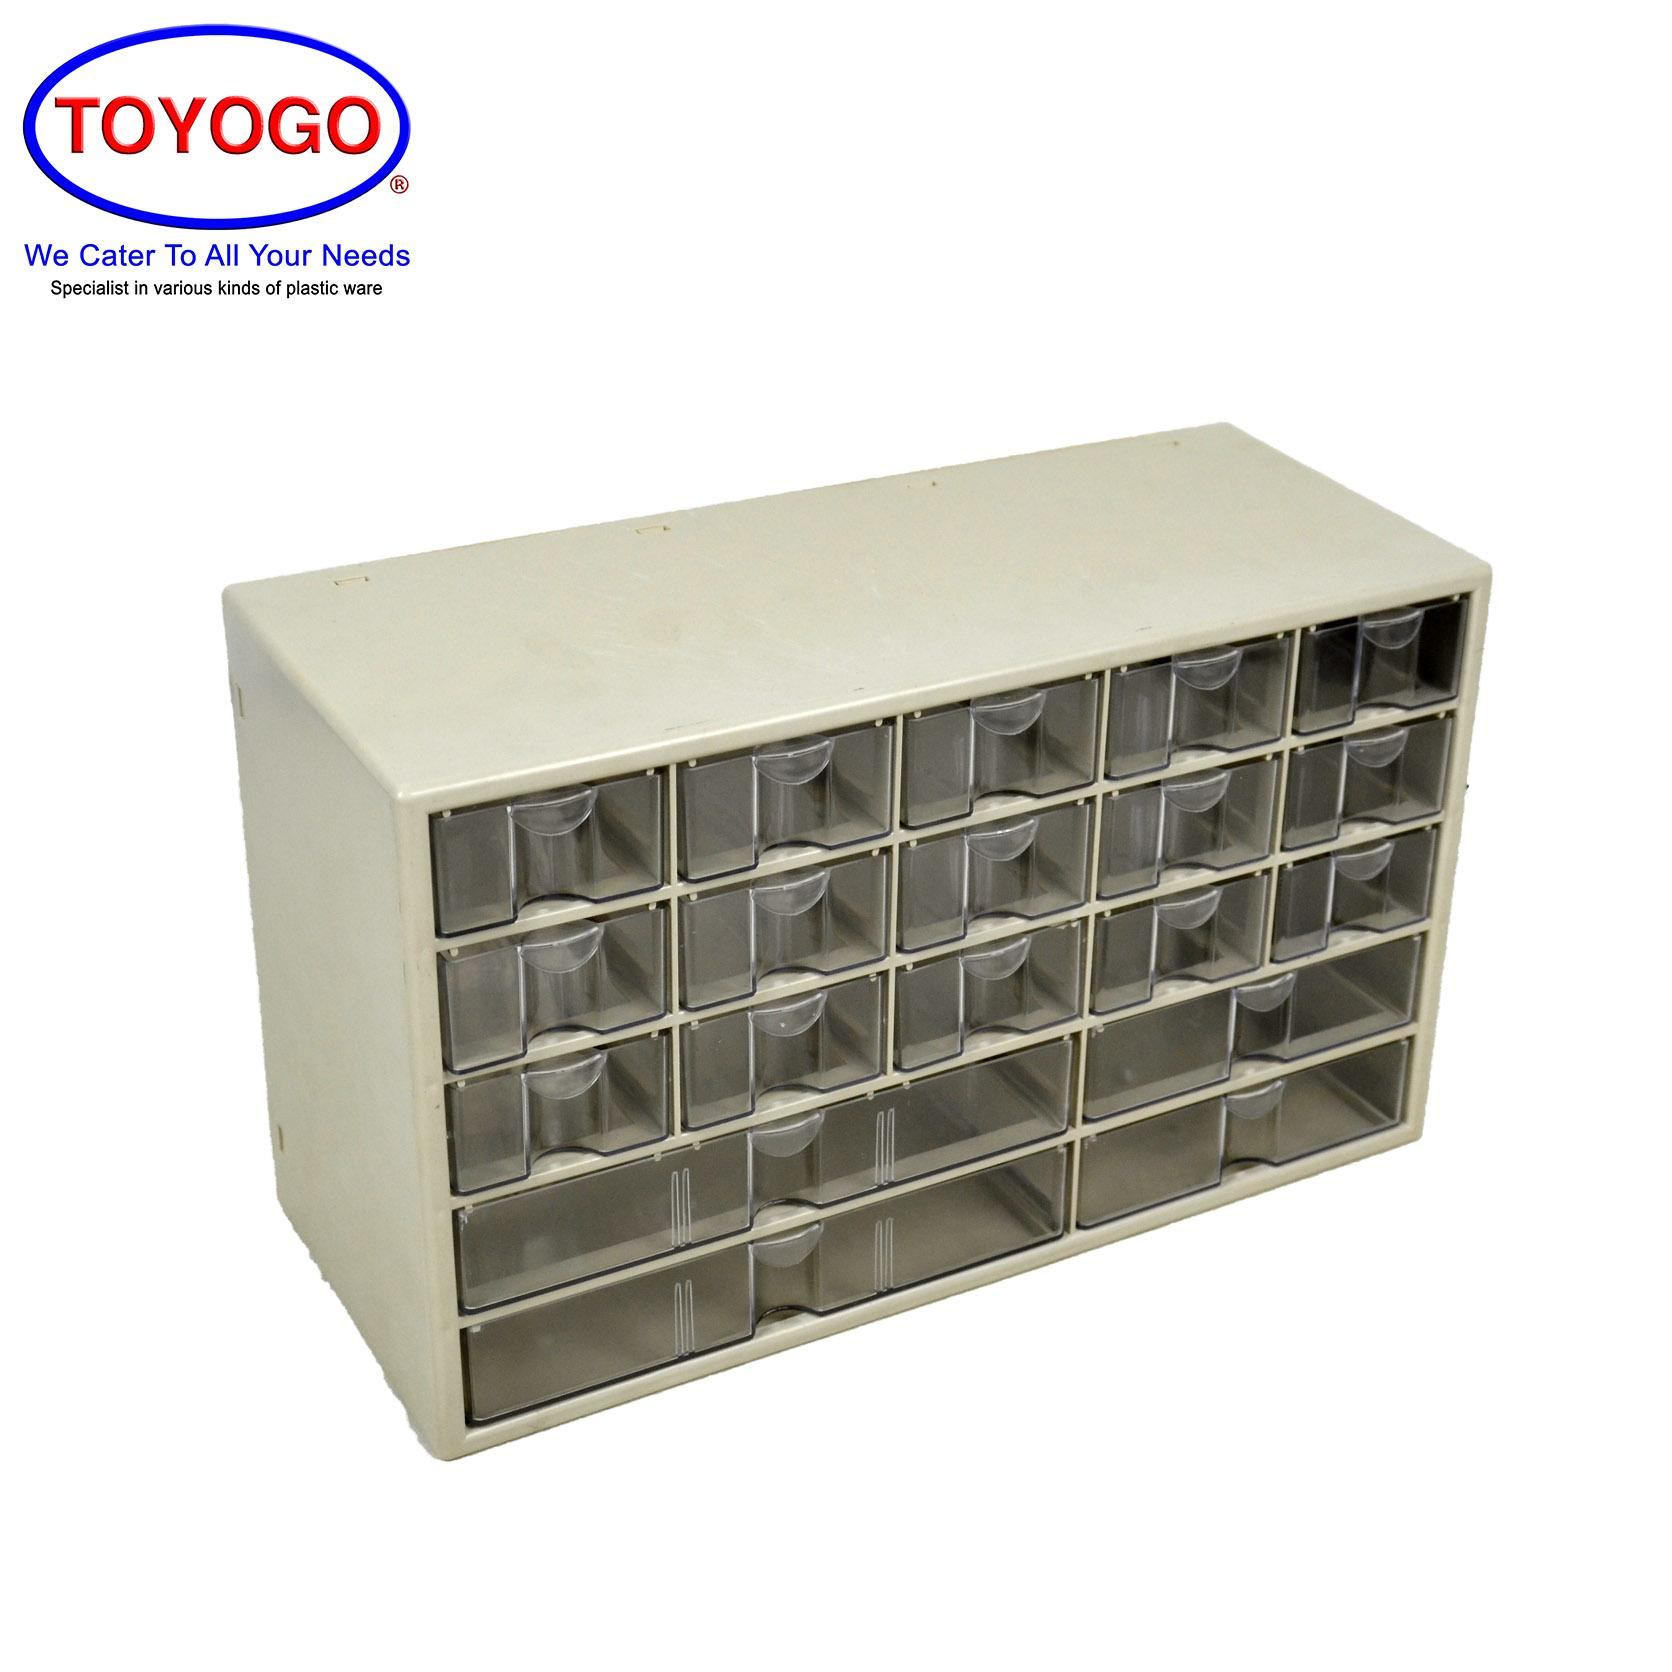 Toyogo 19 Compartment Case (7119)